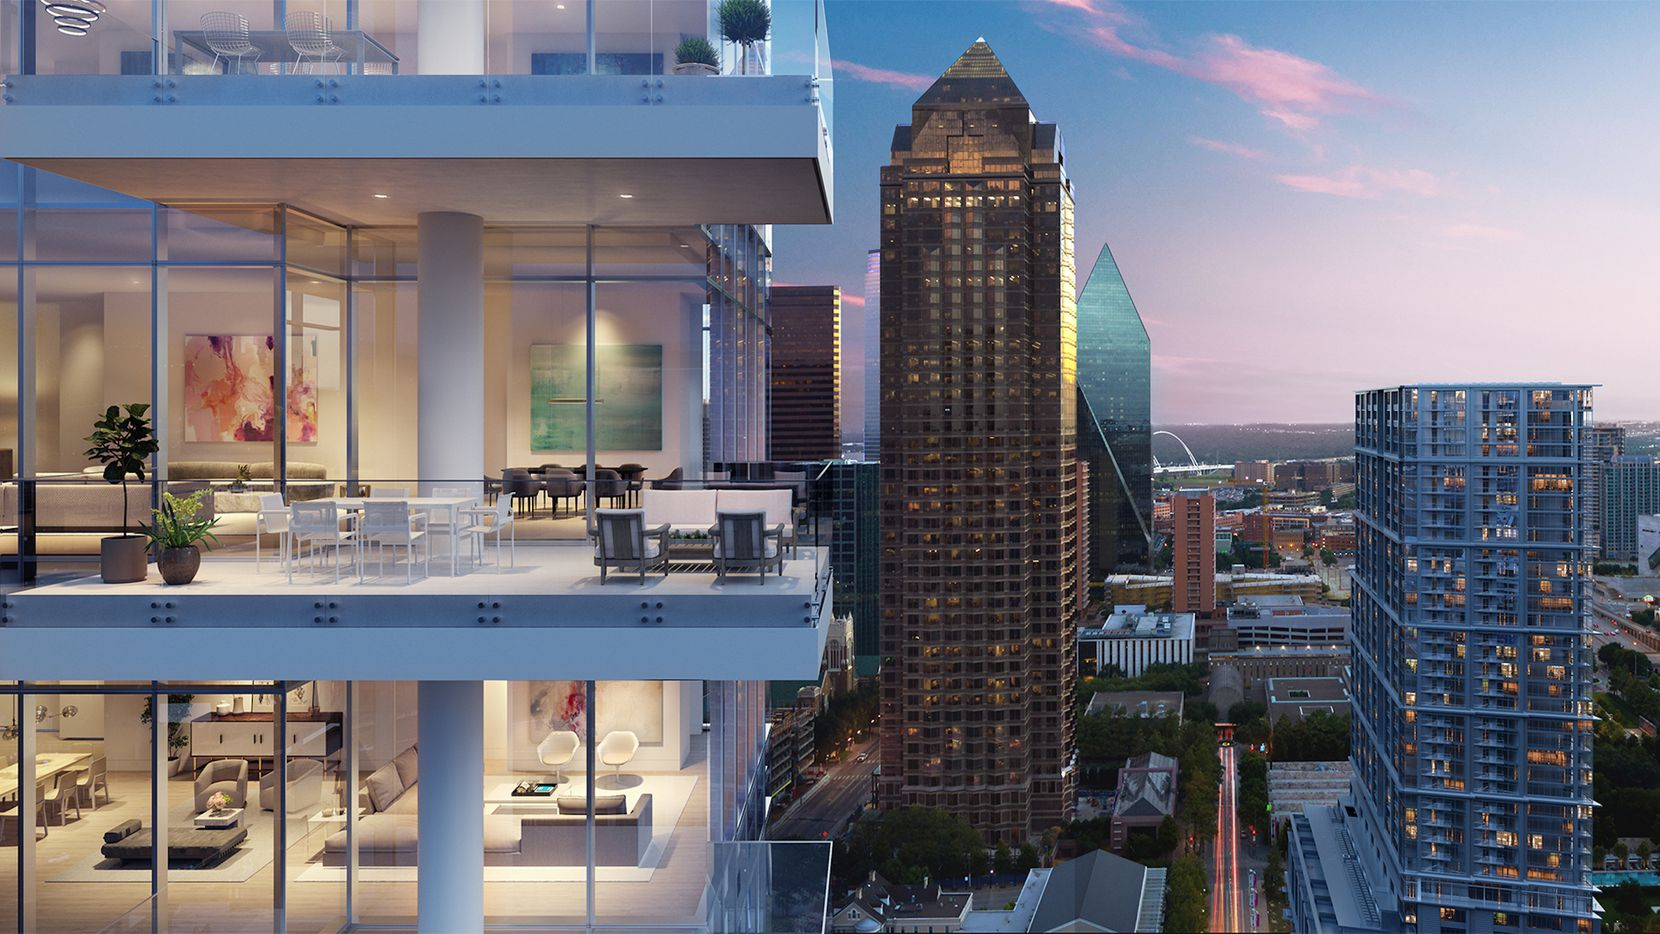 The Hall Arts Residences building opens in early 2020.